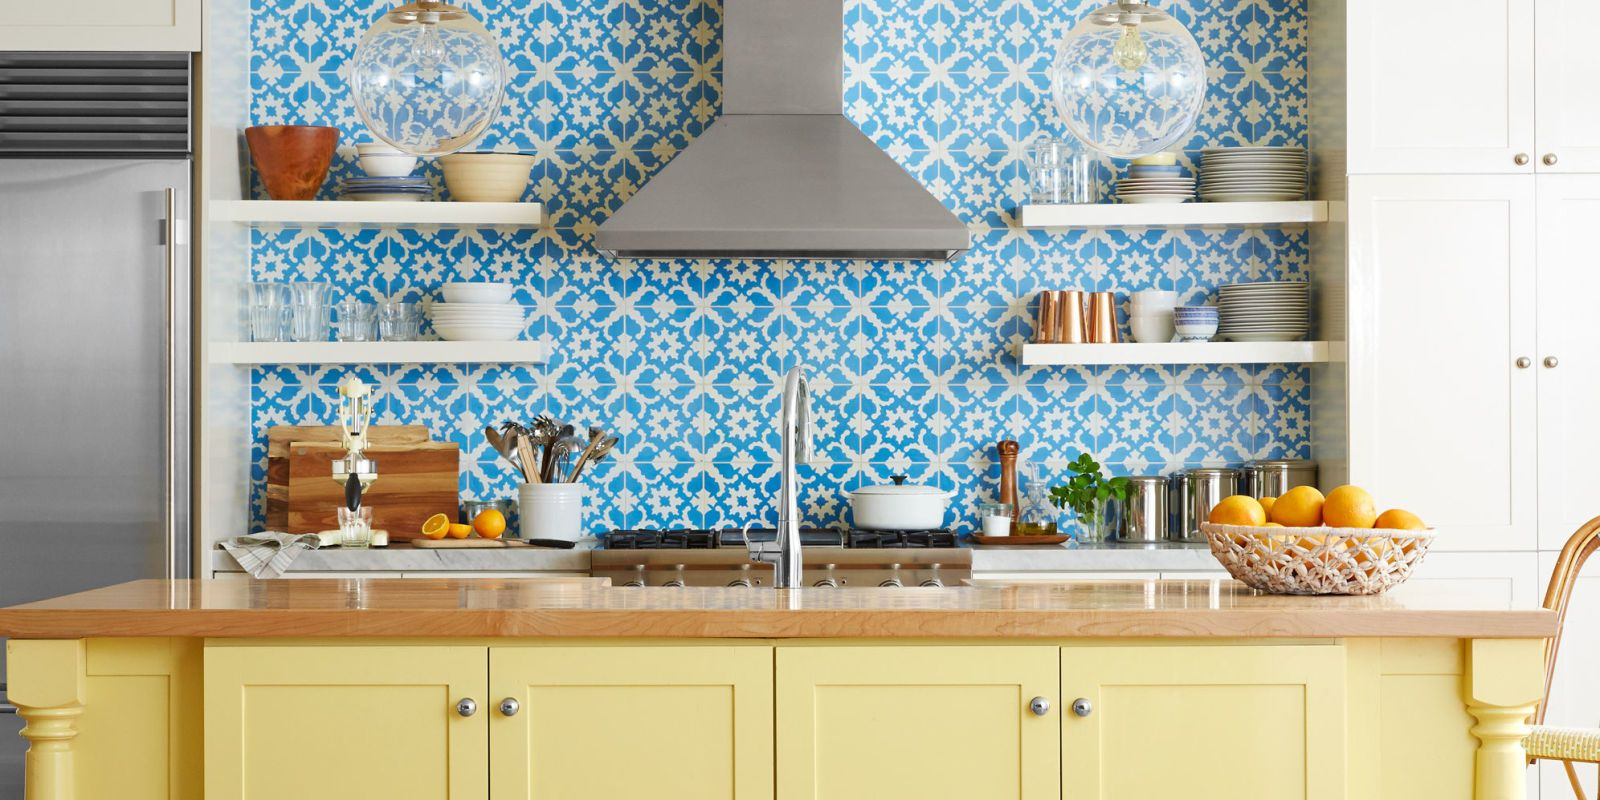 A Statement Making Tile Backsplash In Your Kitchen Is A Smart Investment  And Hereu0027s Why: Not Only Is Tile Incredibly Durable And Easy To Clean, ...